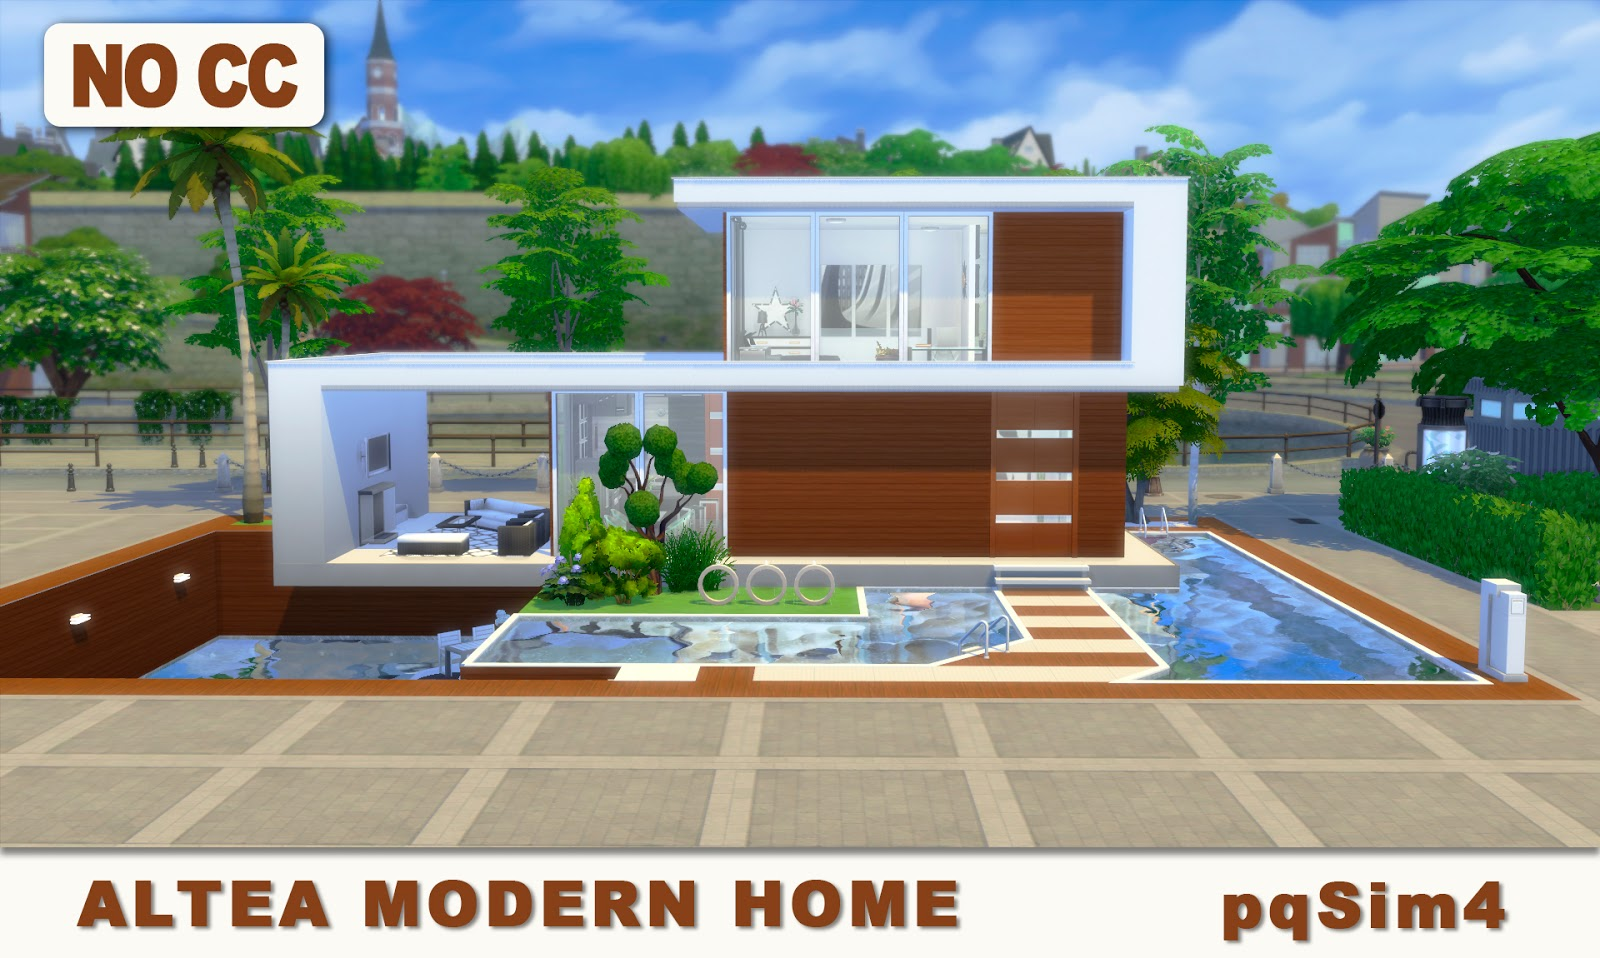 Altea Modern Home. Sims 4 Speed Build and Download.